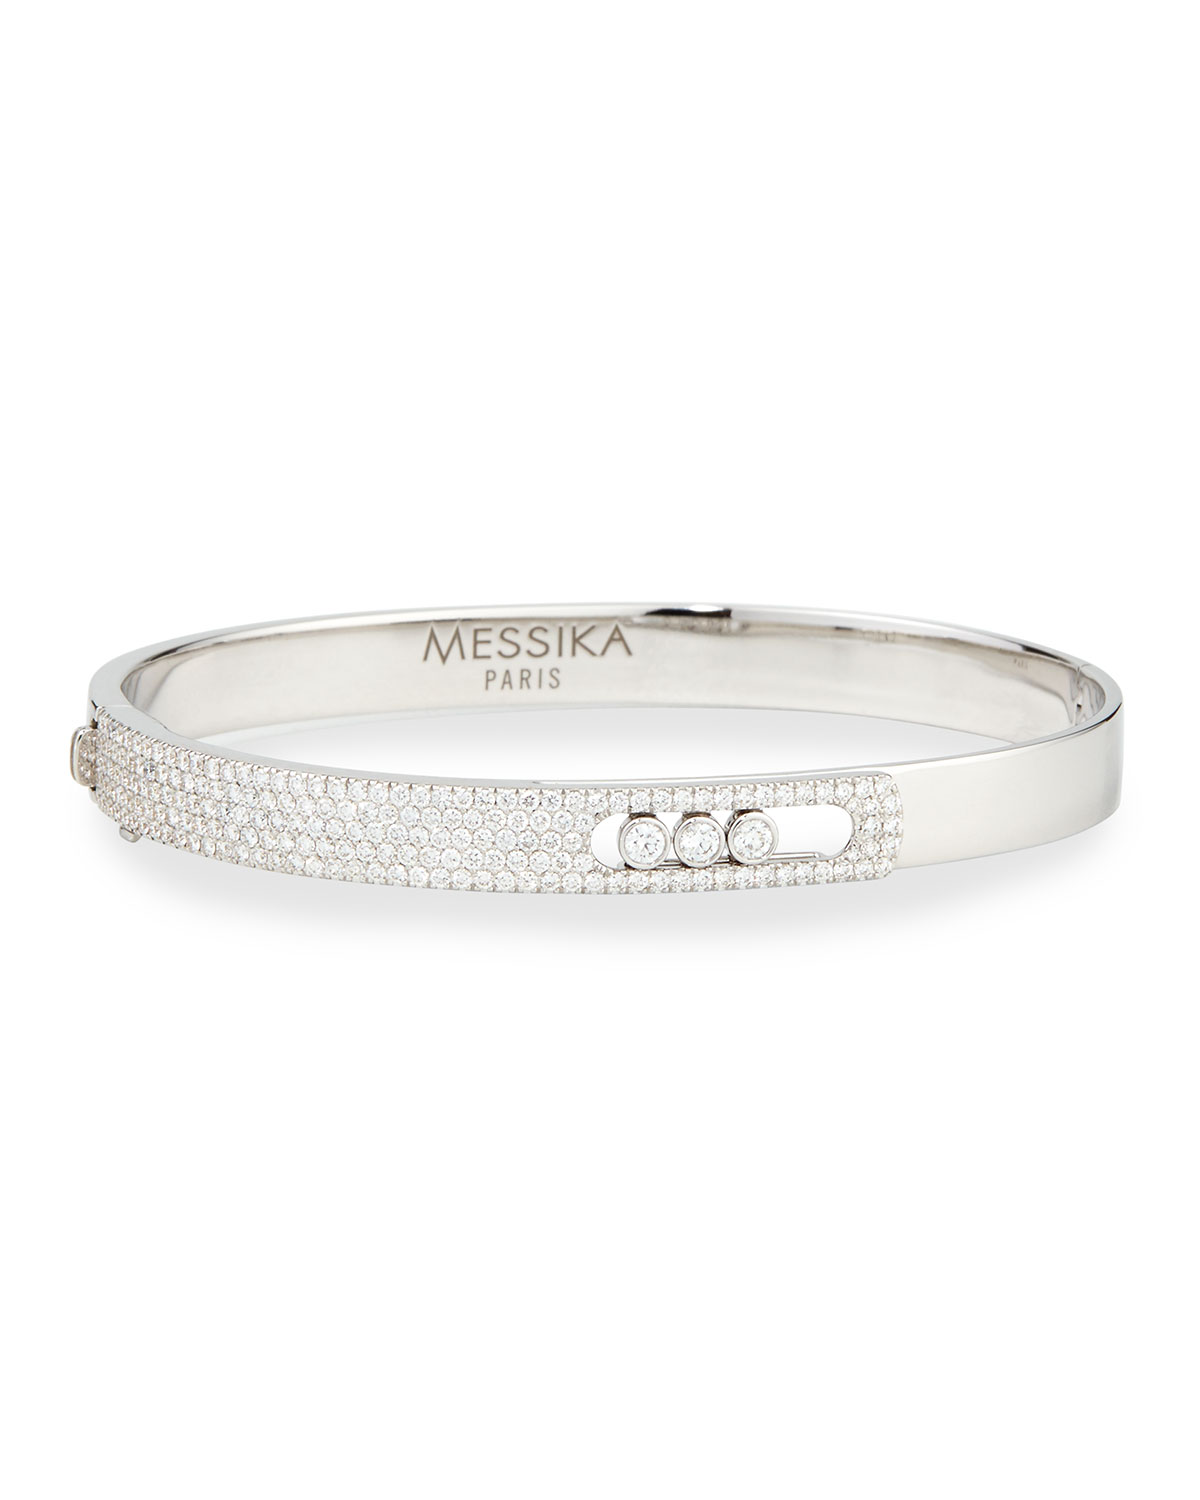 Messika 18k White Gold Small Pave Diamond Bangle COleaLFJVx